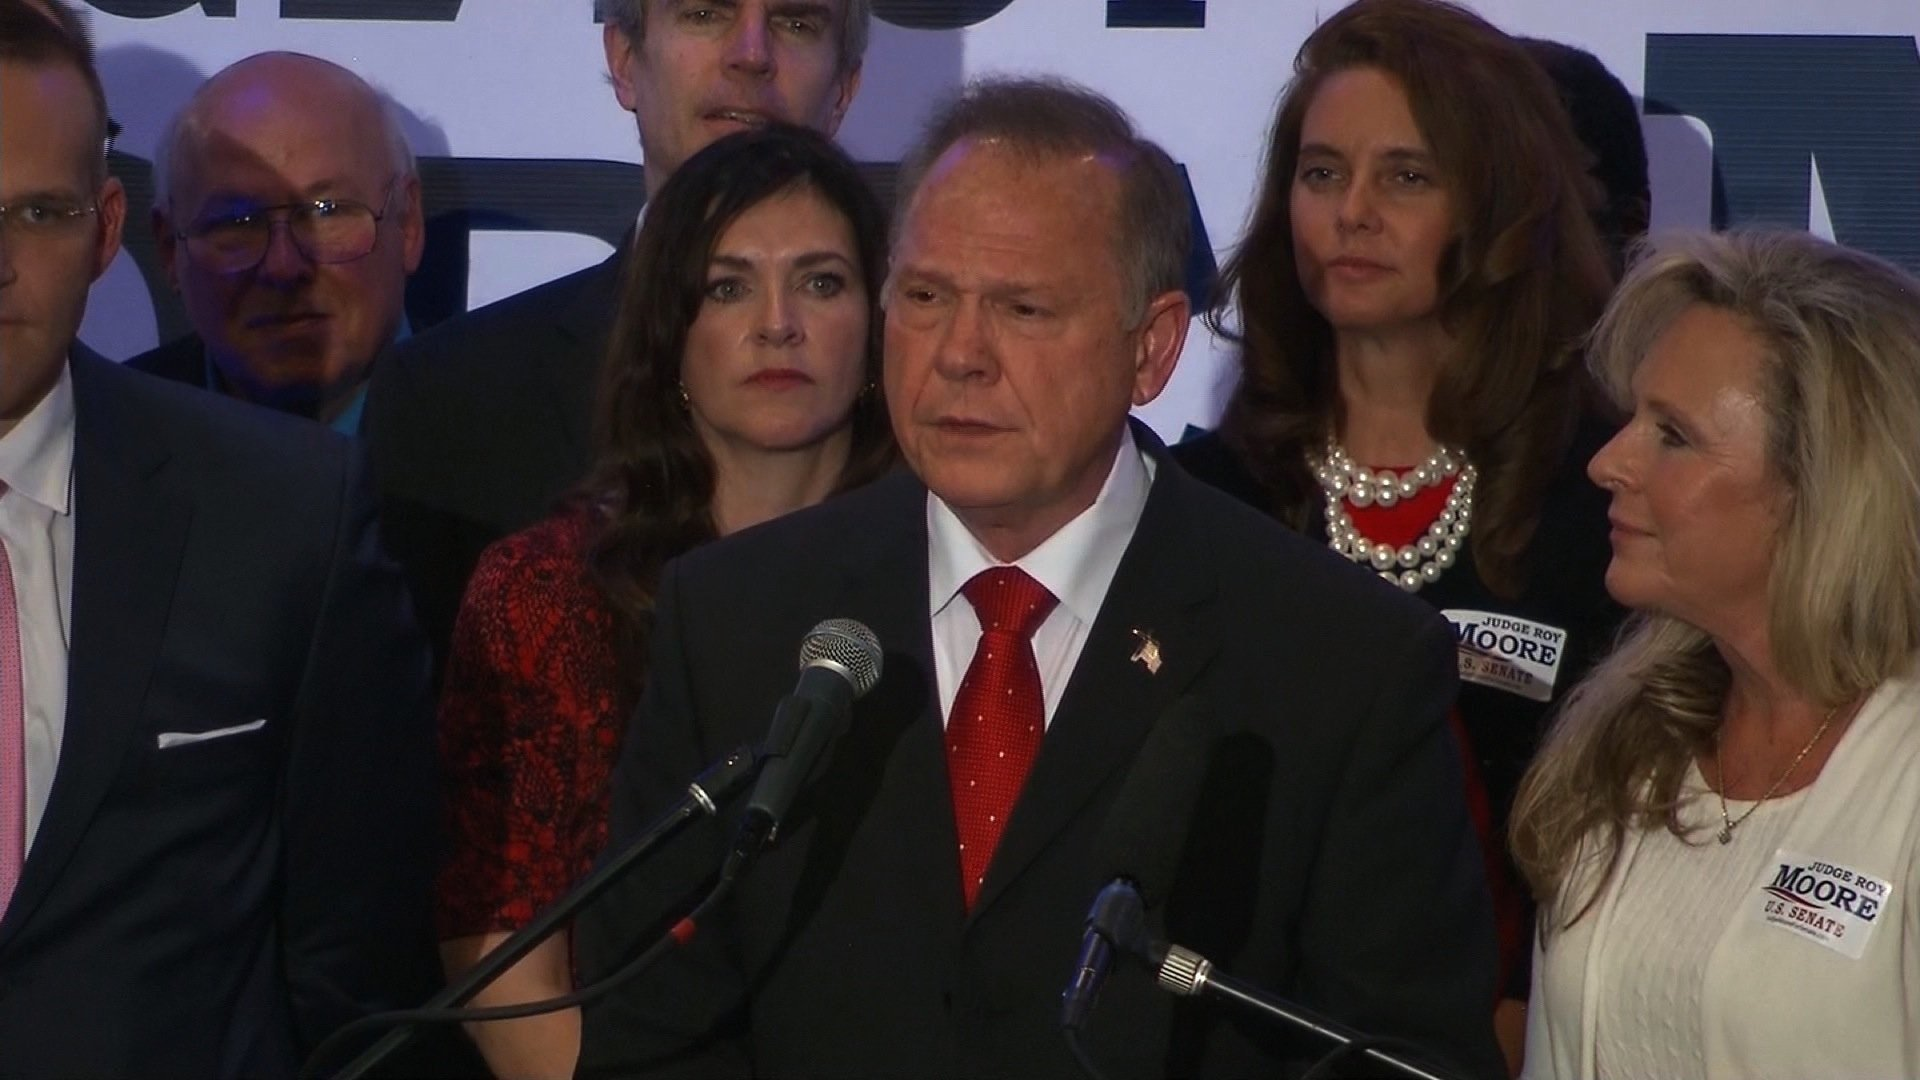 Alabama Republican Senate nominee Roy Moore spoke on November 16, 2017. He continued to deny the allegations against him as more women continue to come forward.